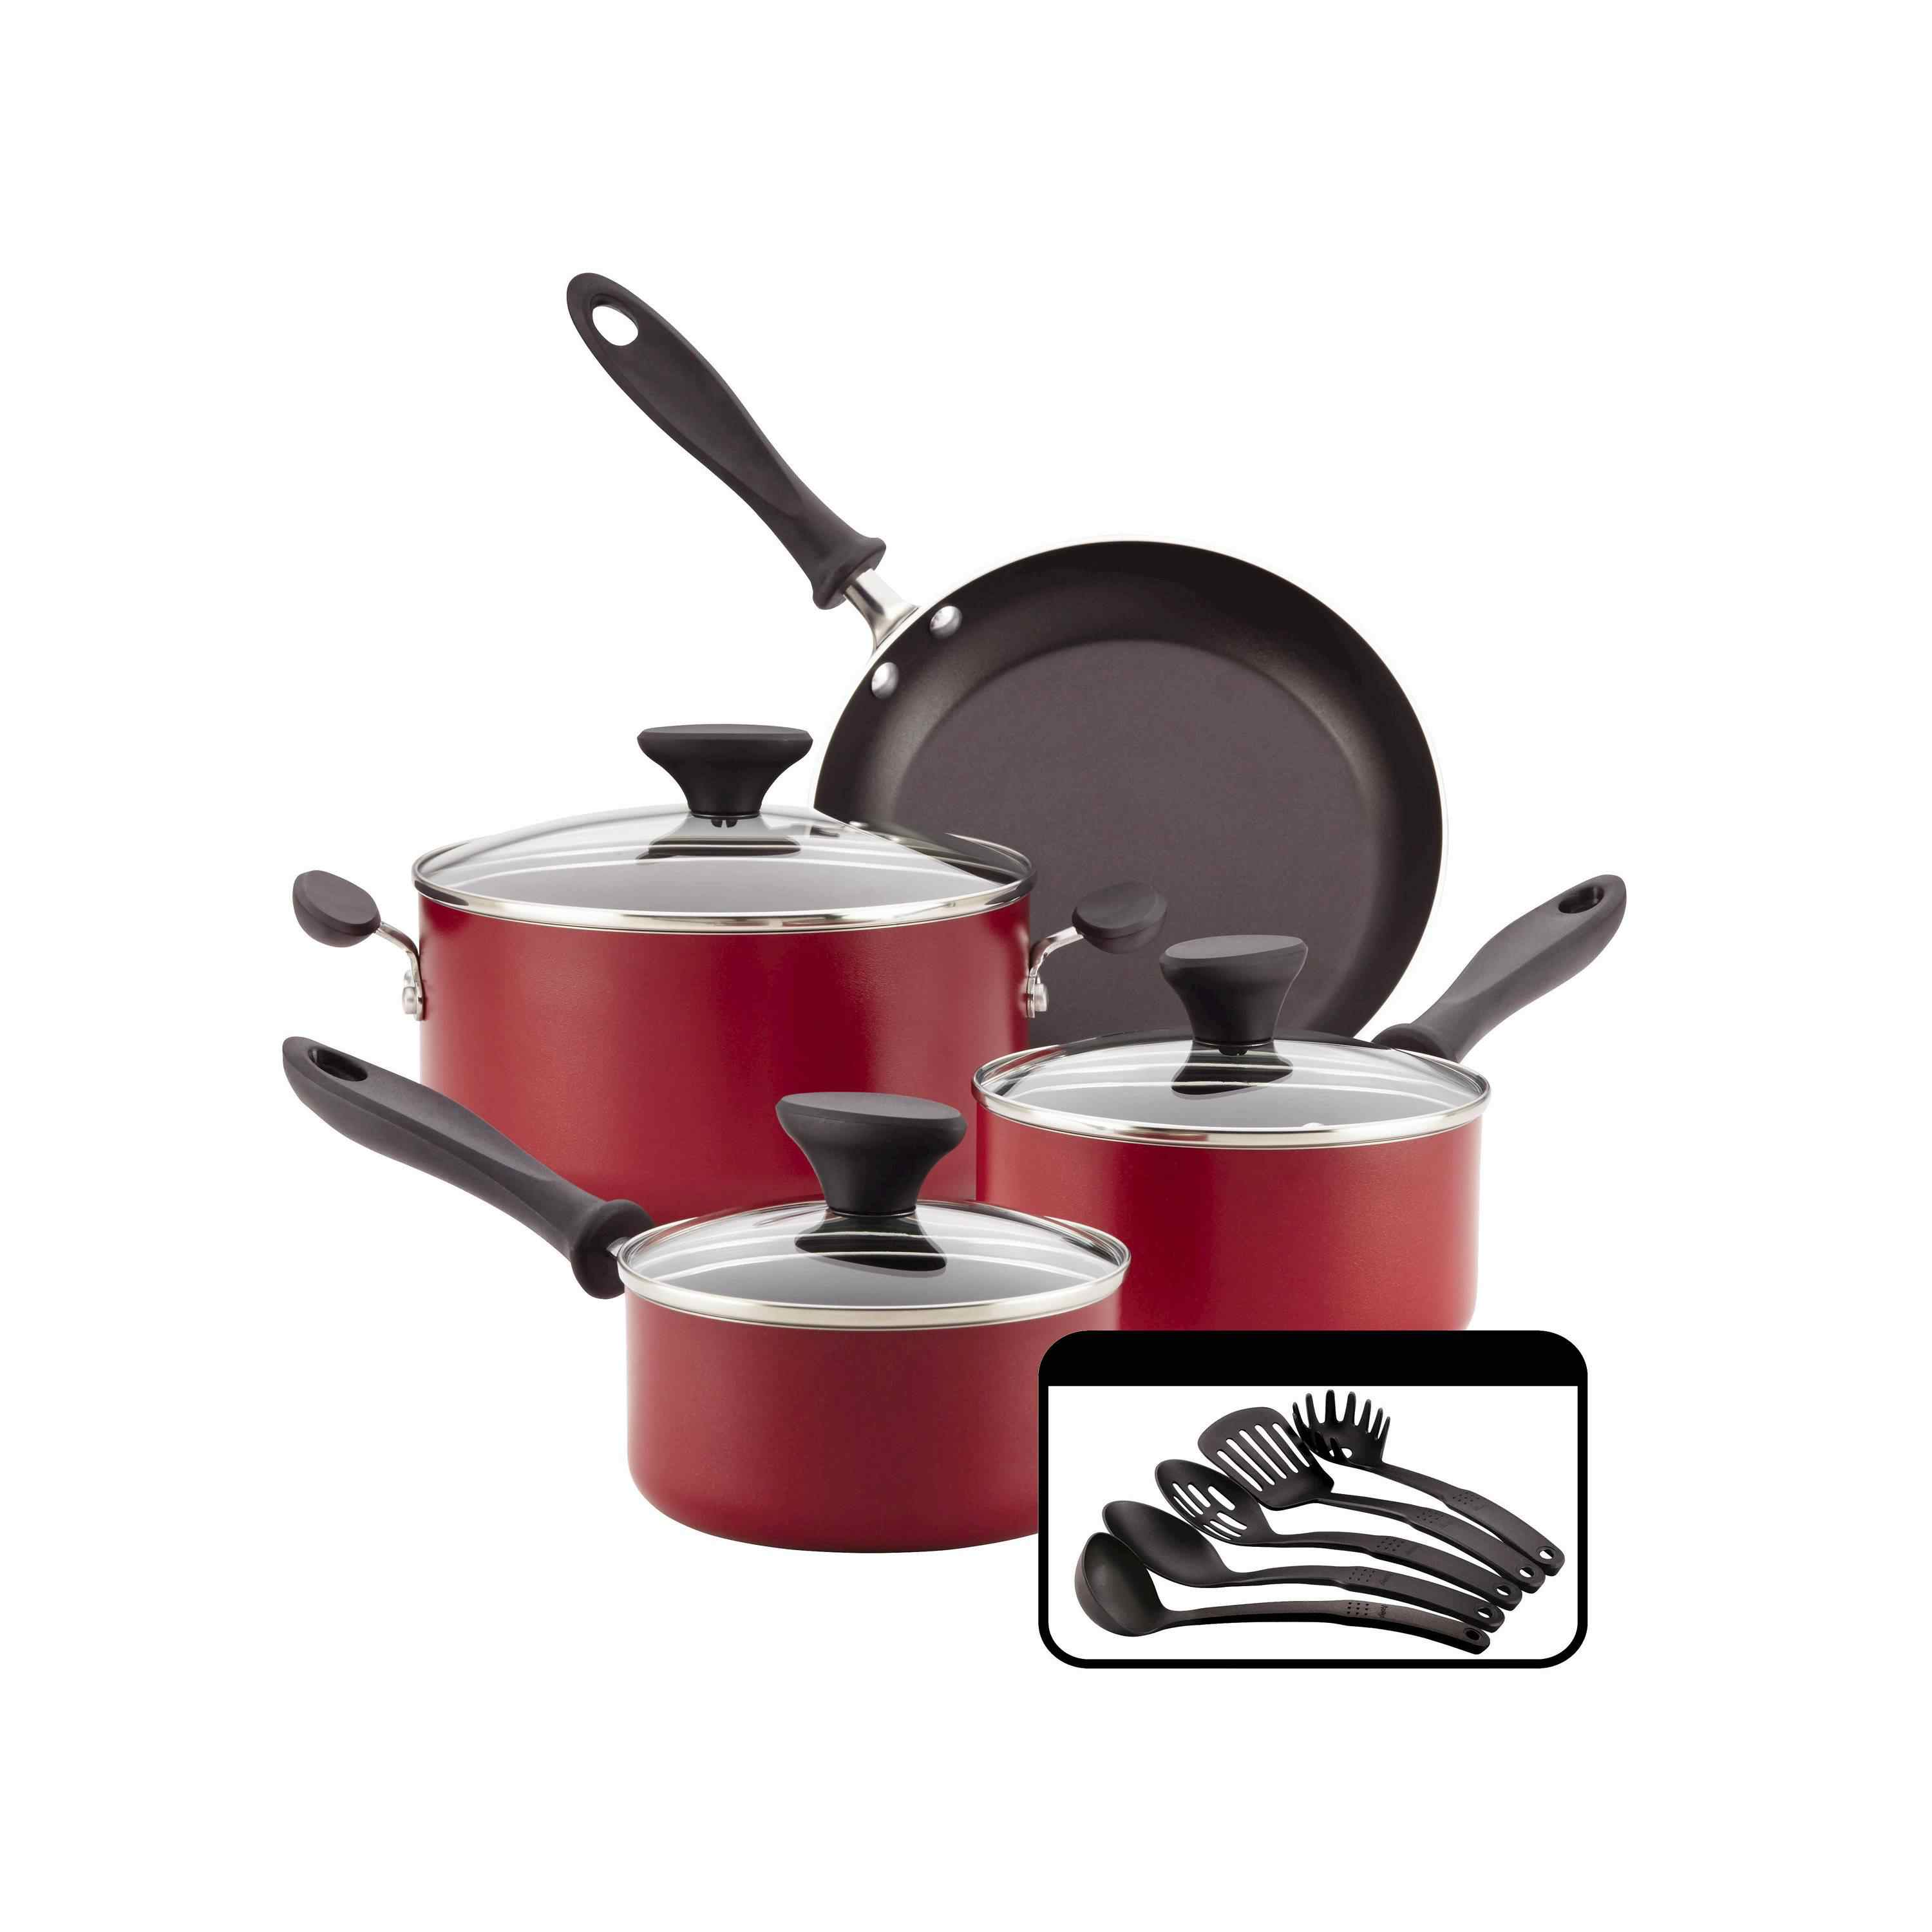 Best Starter Set For Small Kitchens Farberware Cookware